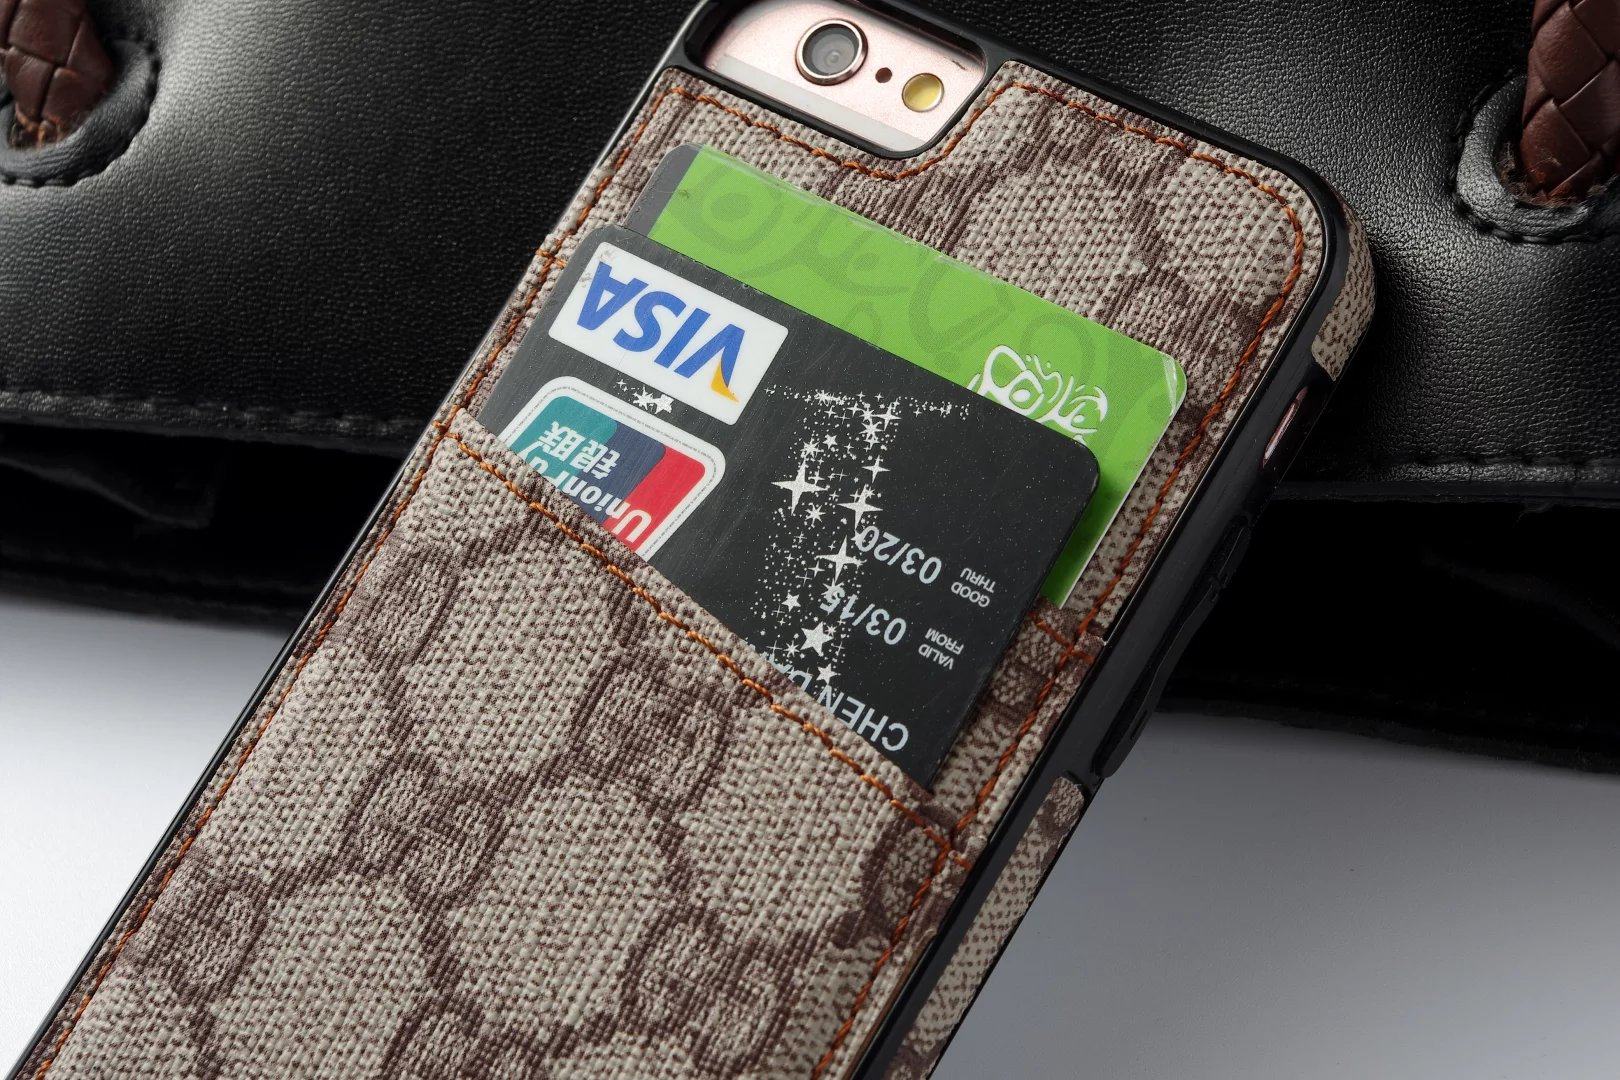 iphone hülle mit eigenem foto günstige iphone hüllen Louis Vuitton iphone7 hülle iphone leder ca7 silikon cover iphone flip ca7 leder handyhülle htc one mini flip hülle iphone 7 handyhülle iphone 3gs